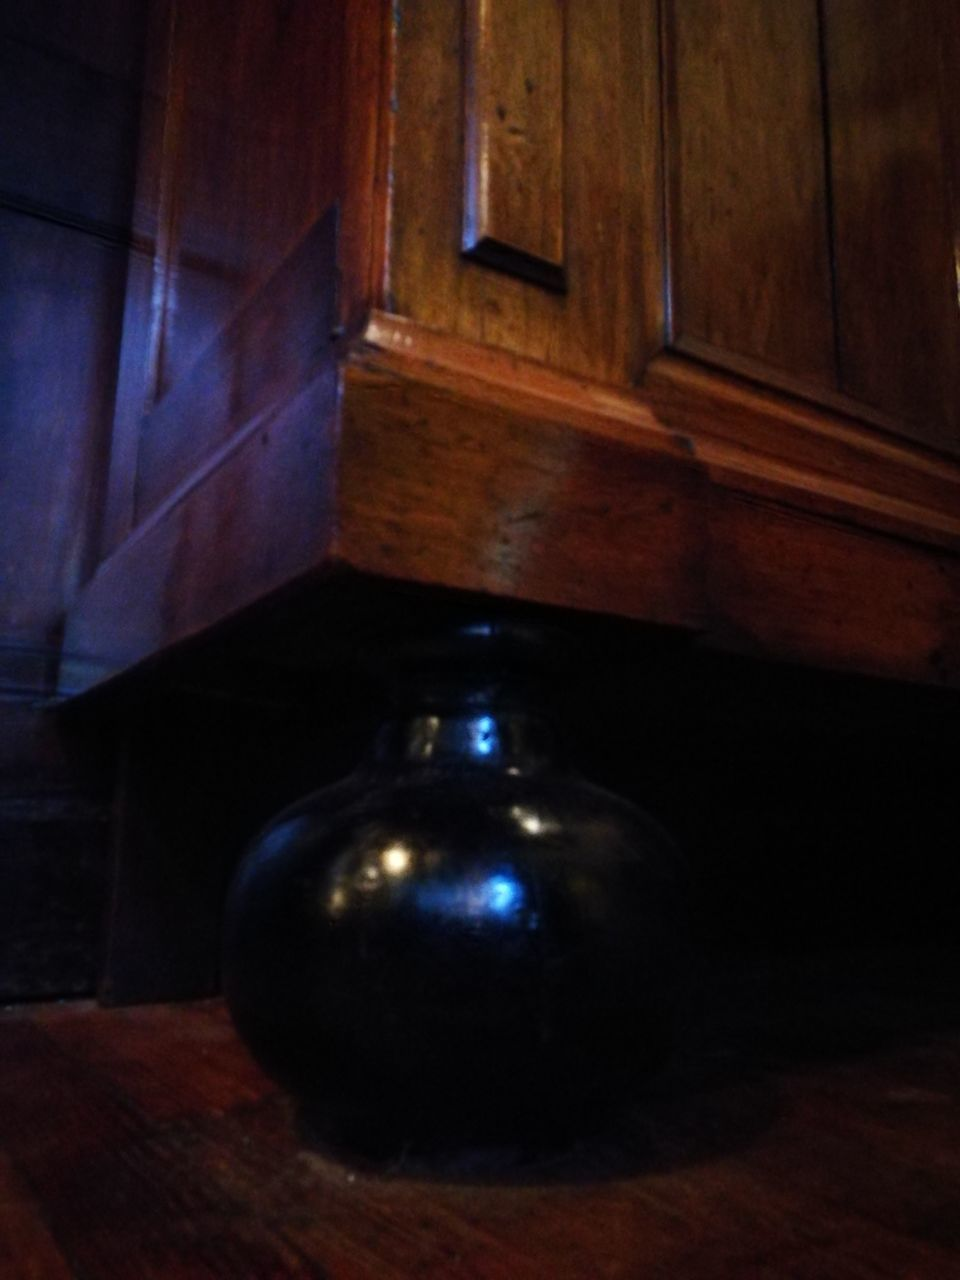 indoors, no people, wood - material, architecture, close-up, day